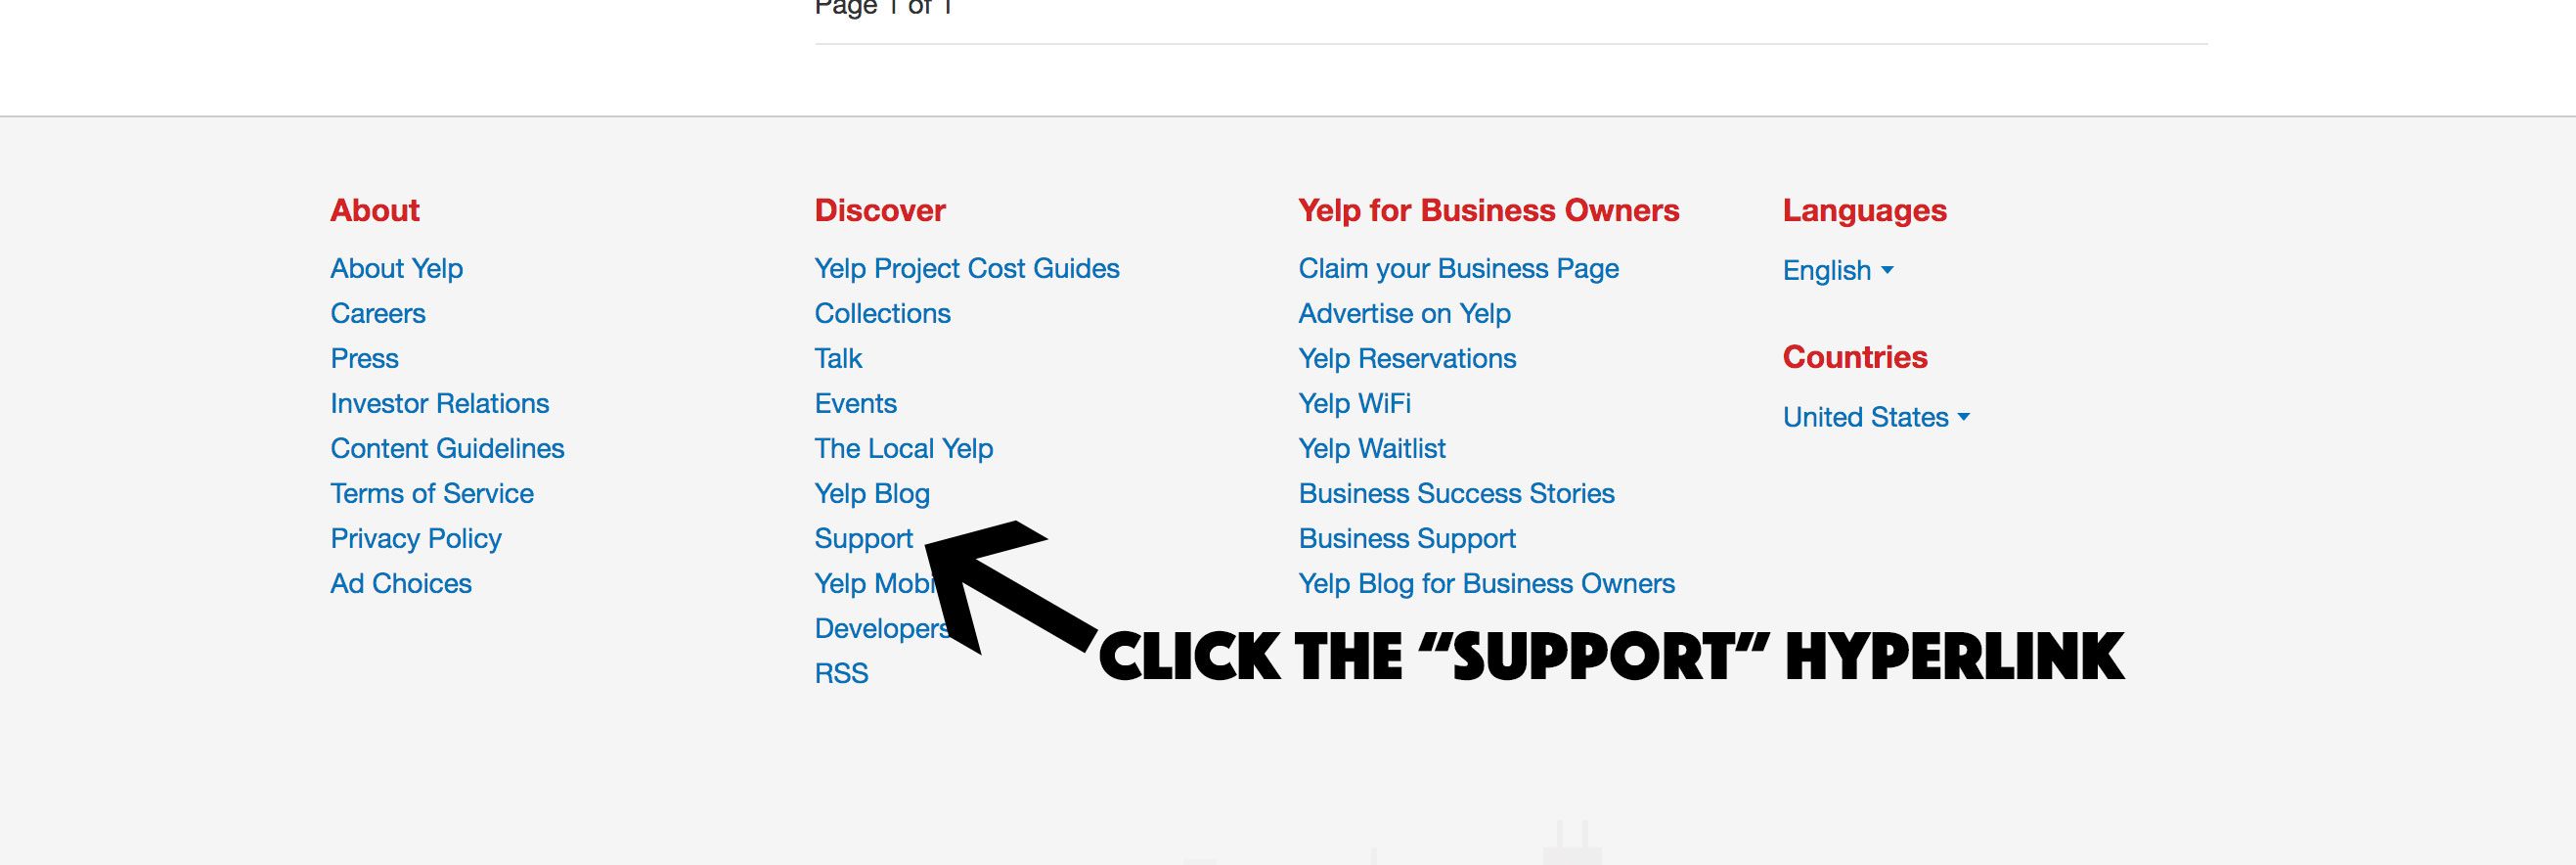 Yelp-support-hyperlink-screenshot